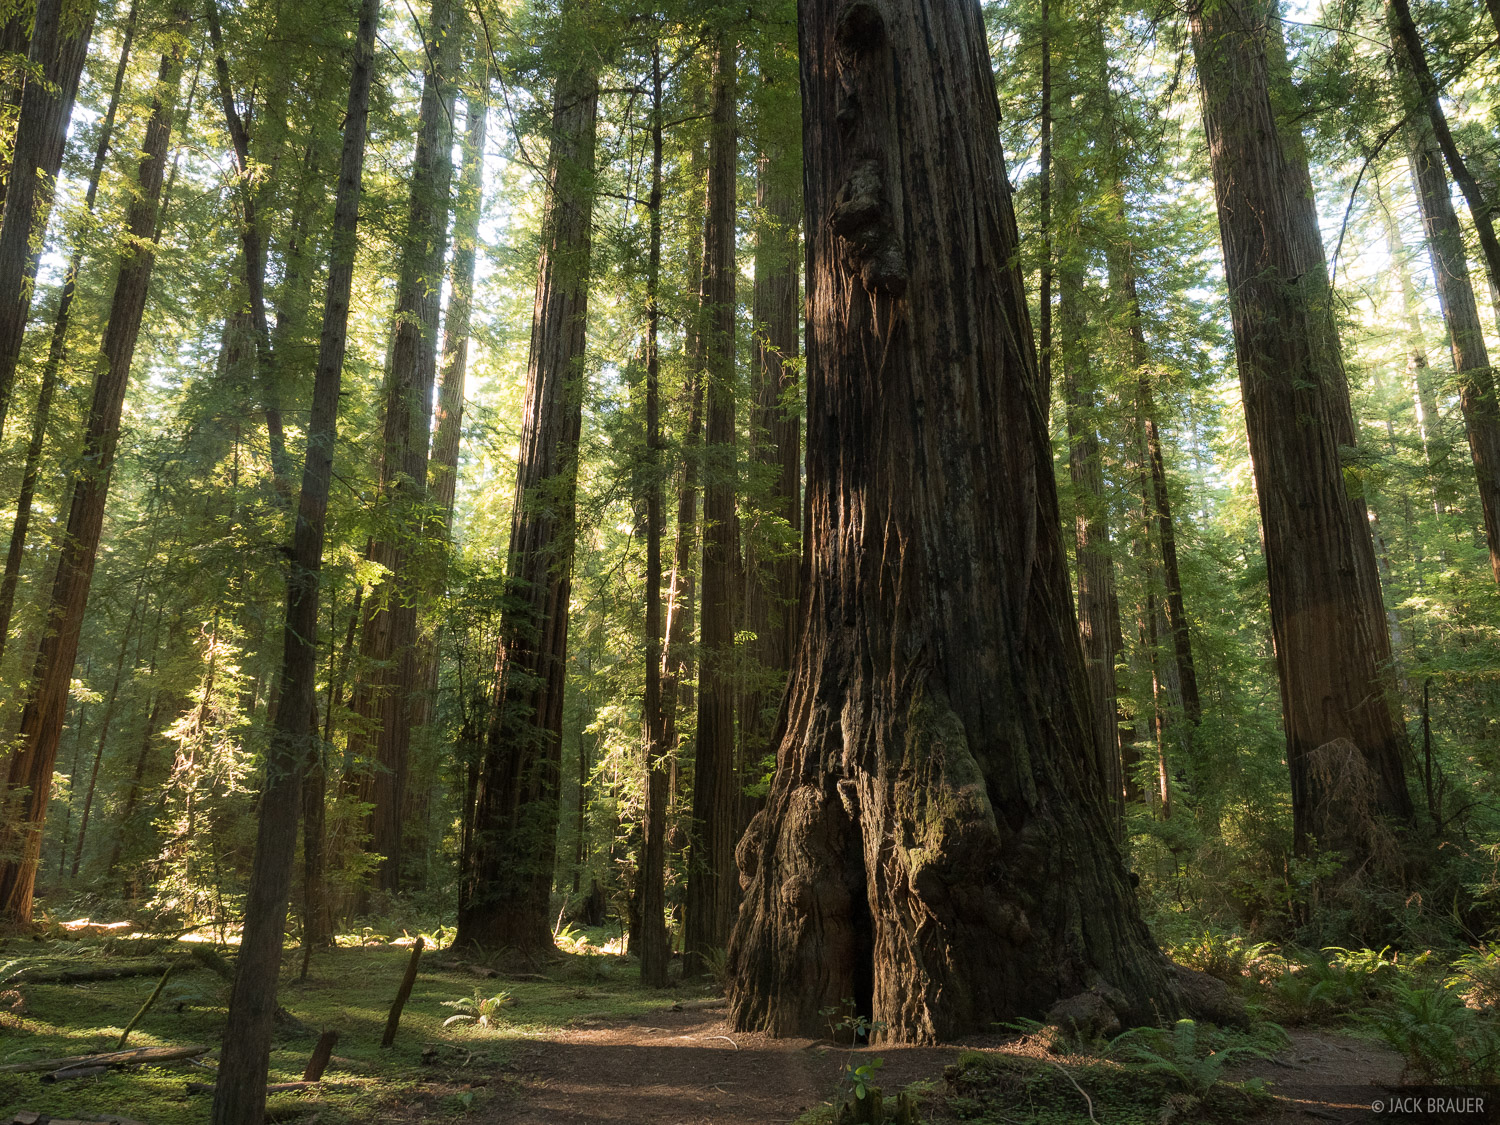 California, Humboldt Redwoods State Park, Rockefeller Grove, redwoods, photo